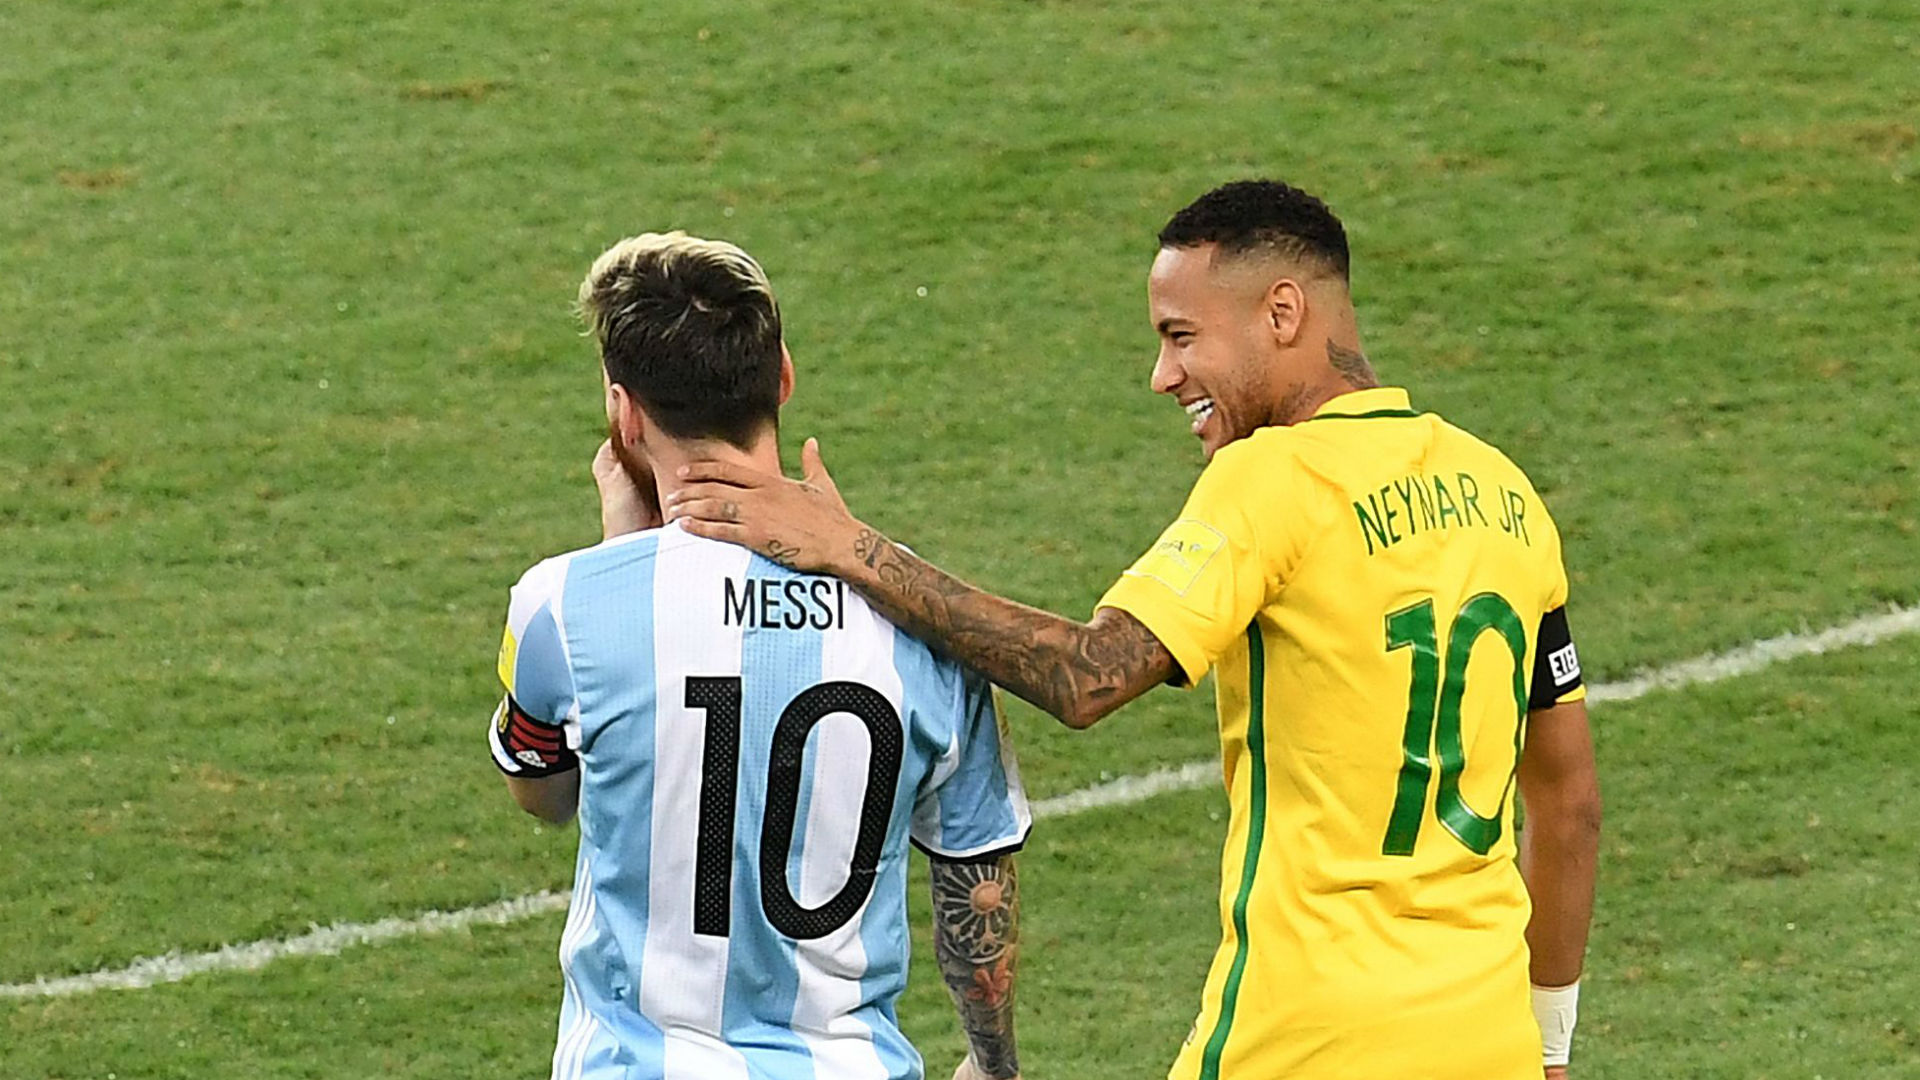 Brazil vs Argentina - Last five meetings of the two rivals in major international tournaments